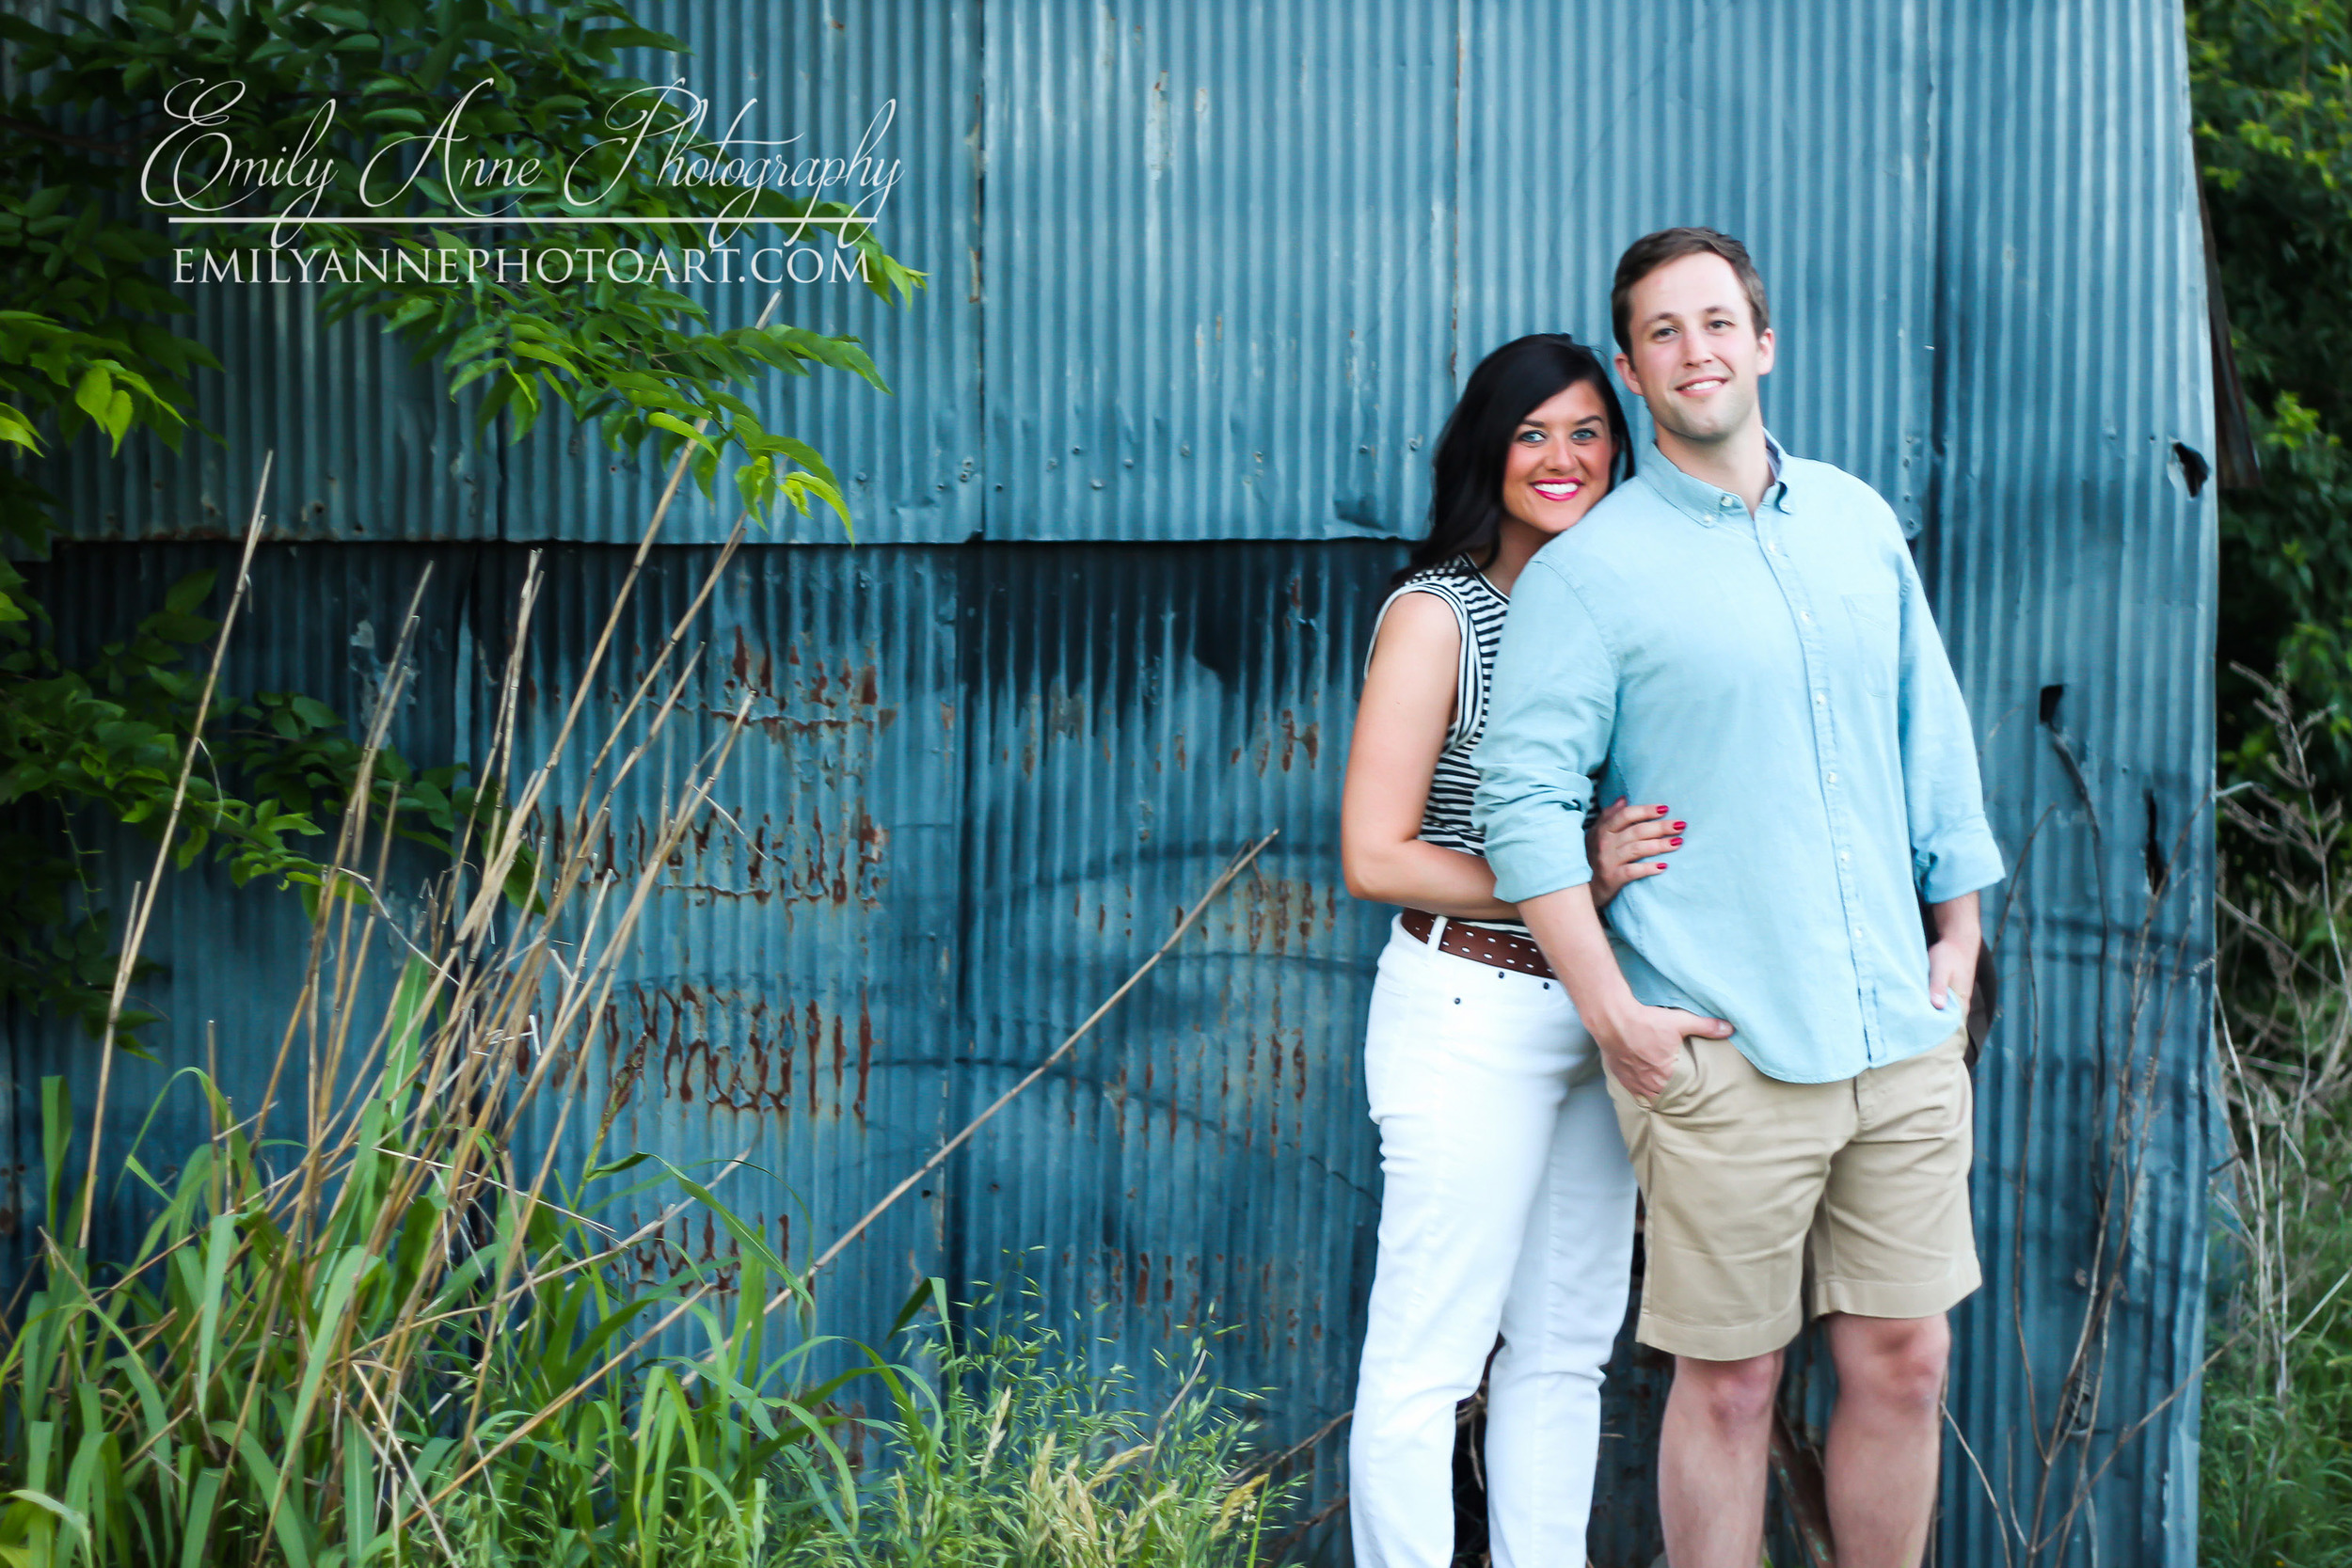 Marcella Vivrette Smith Park in Brentwood was such a lovely location to capture this amazing couple.